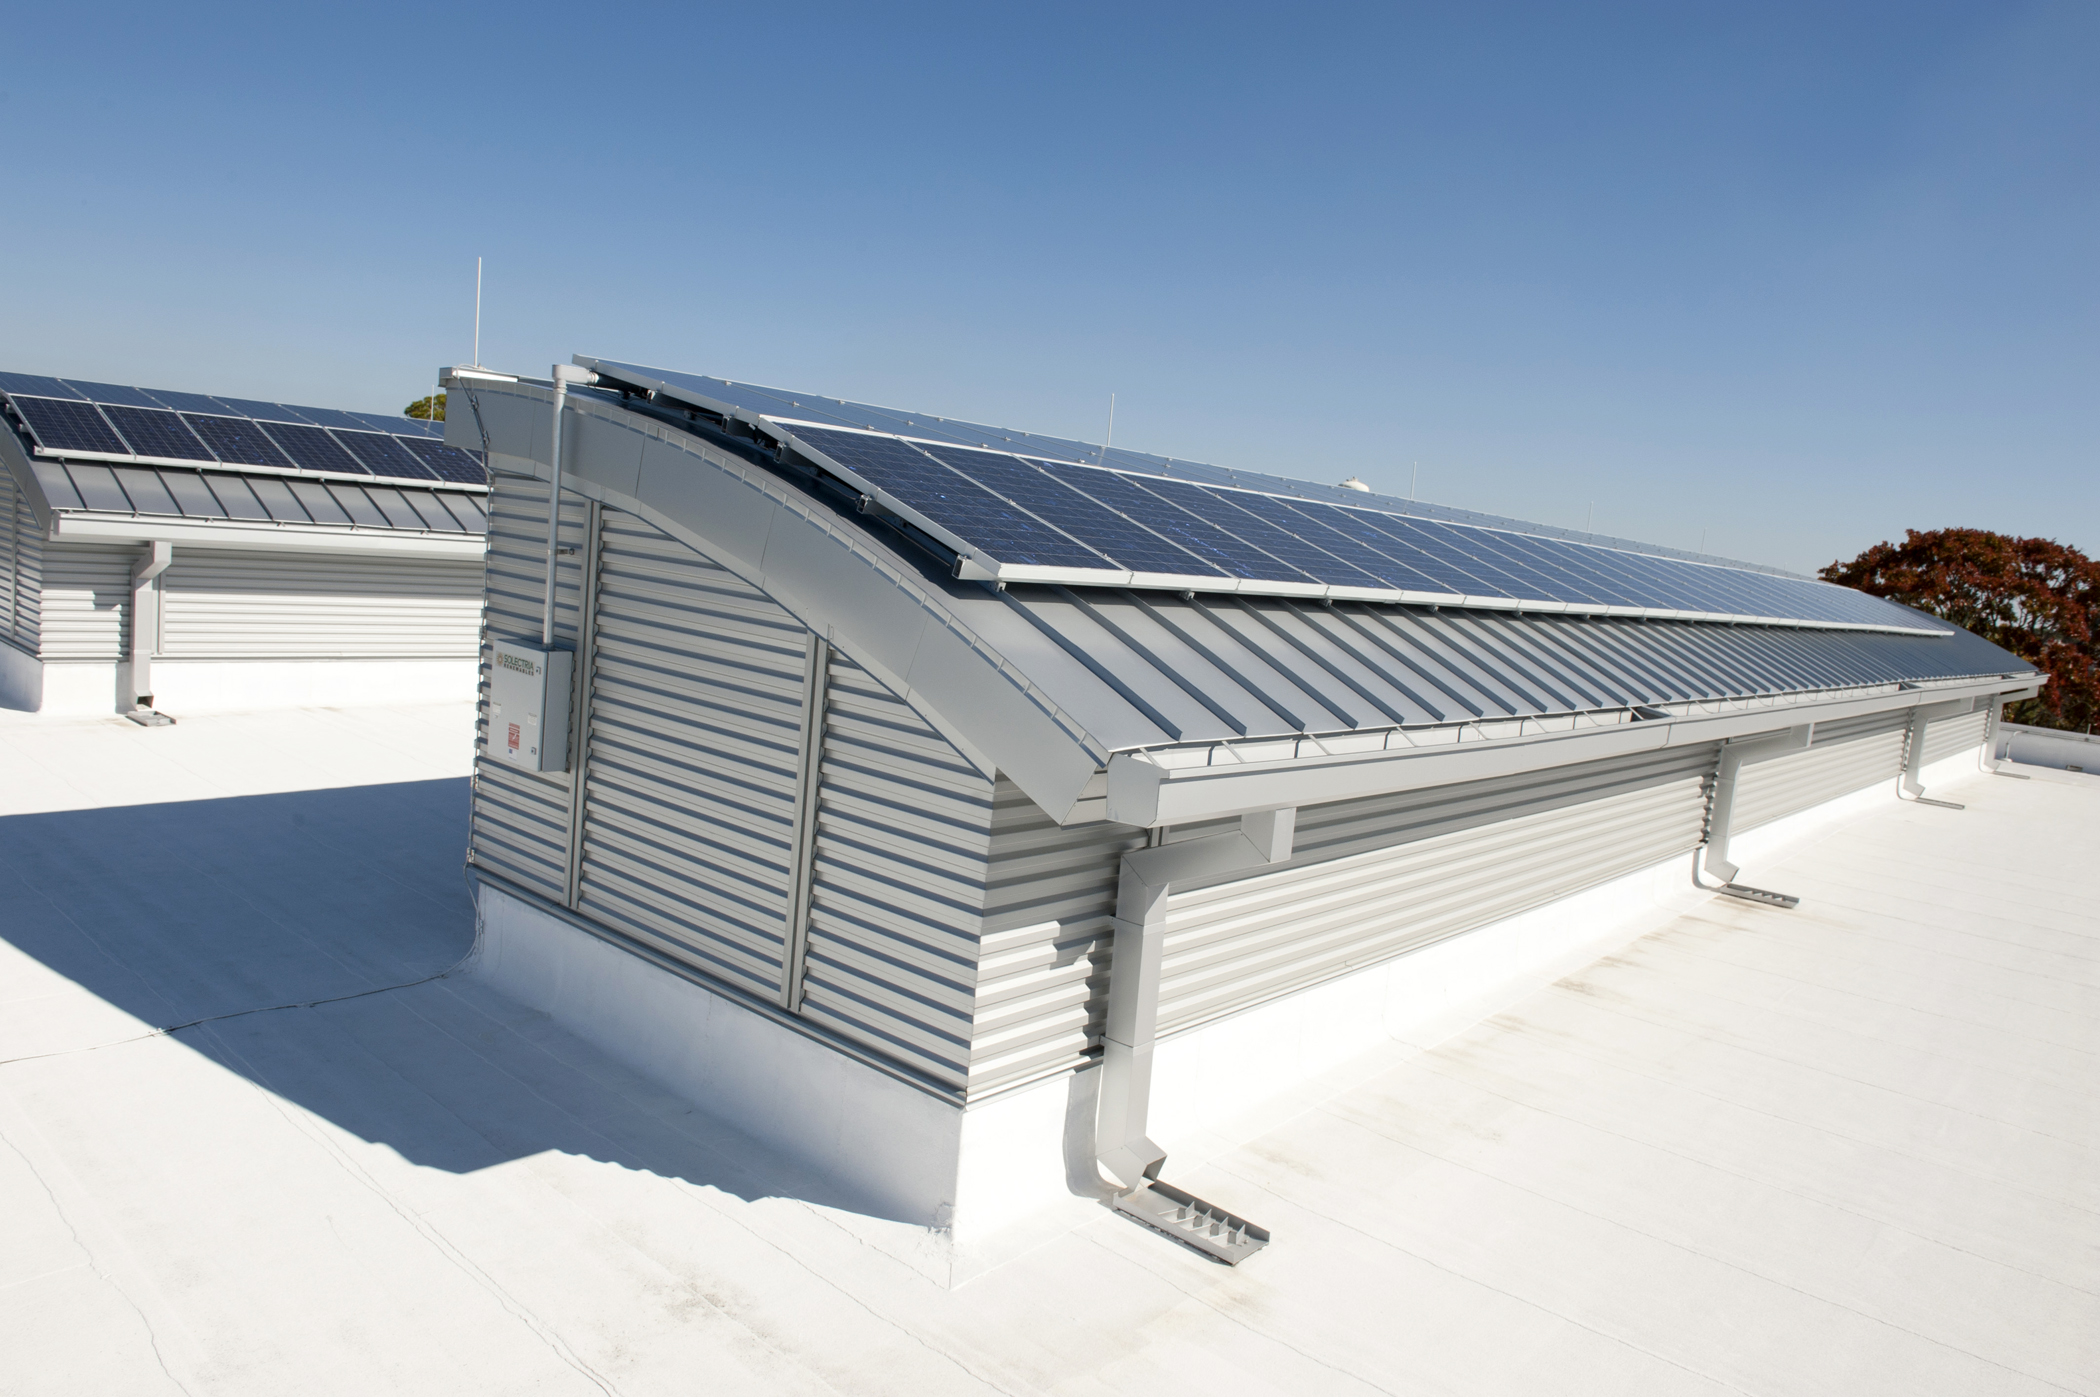 an image of a commercial roof that has been designed sustainably using solar panels and 'cool roof design' techniques